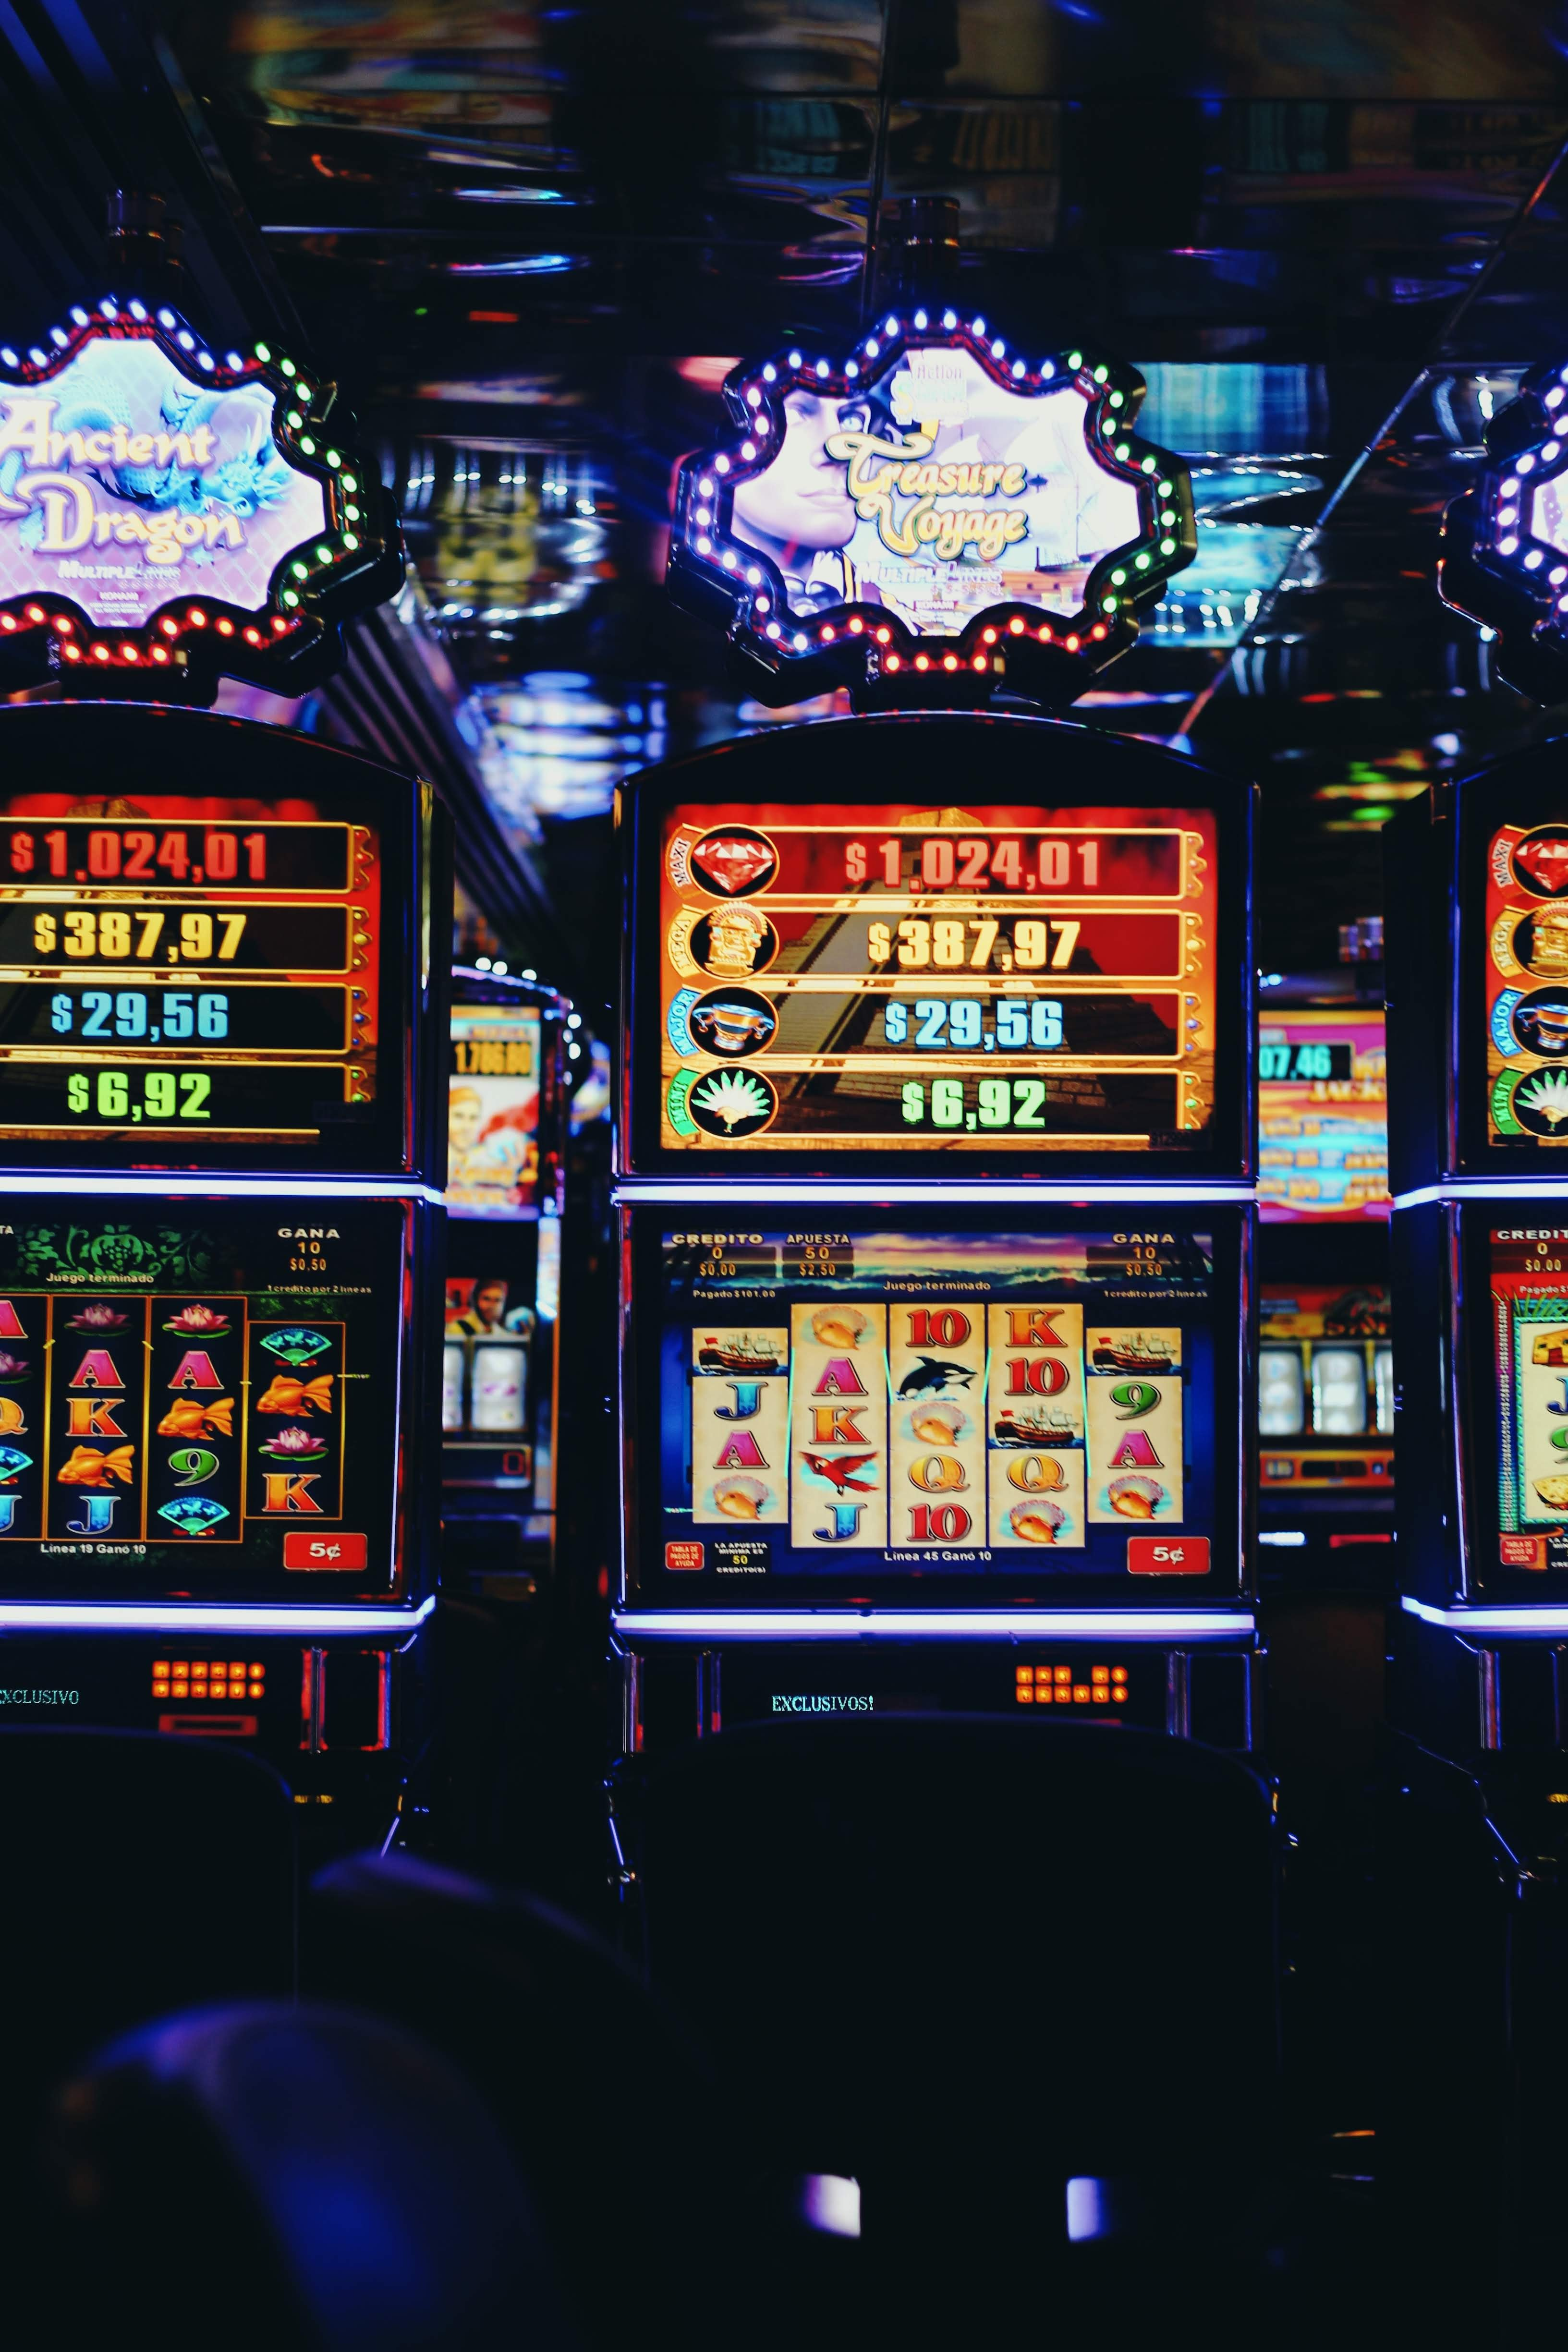 Covid is causing more gambling not less